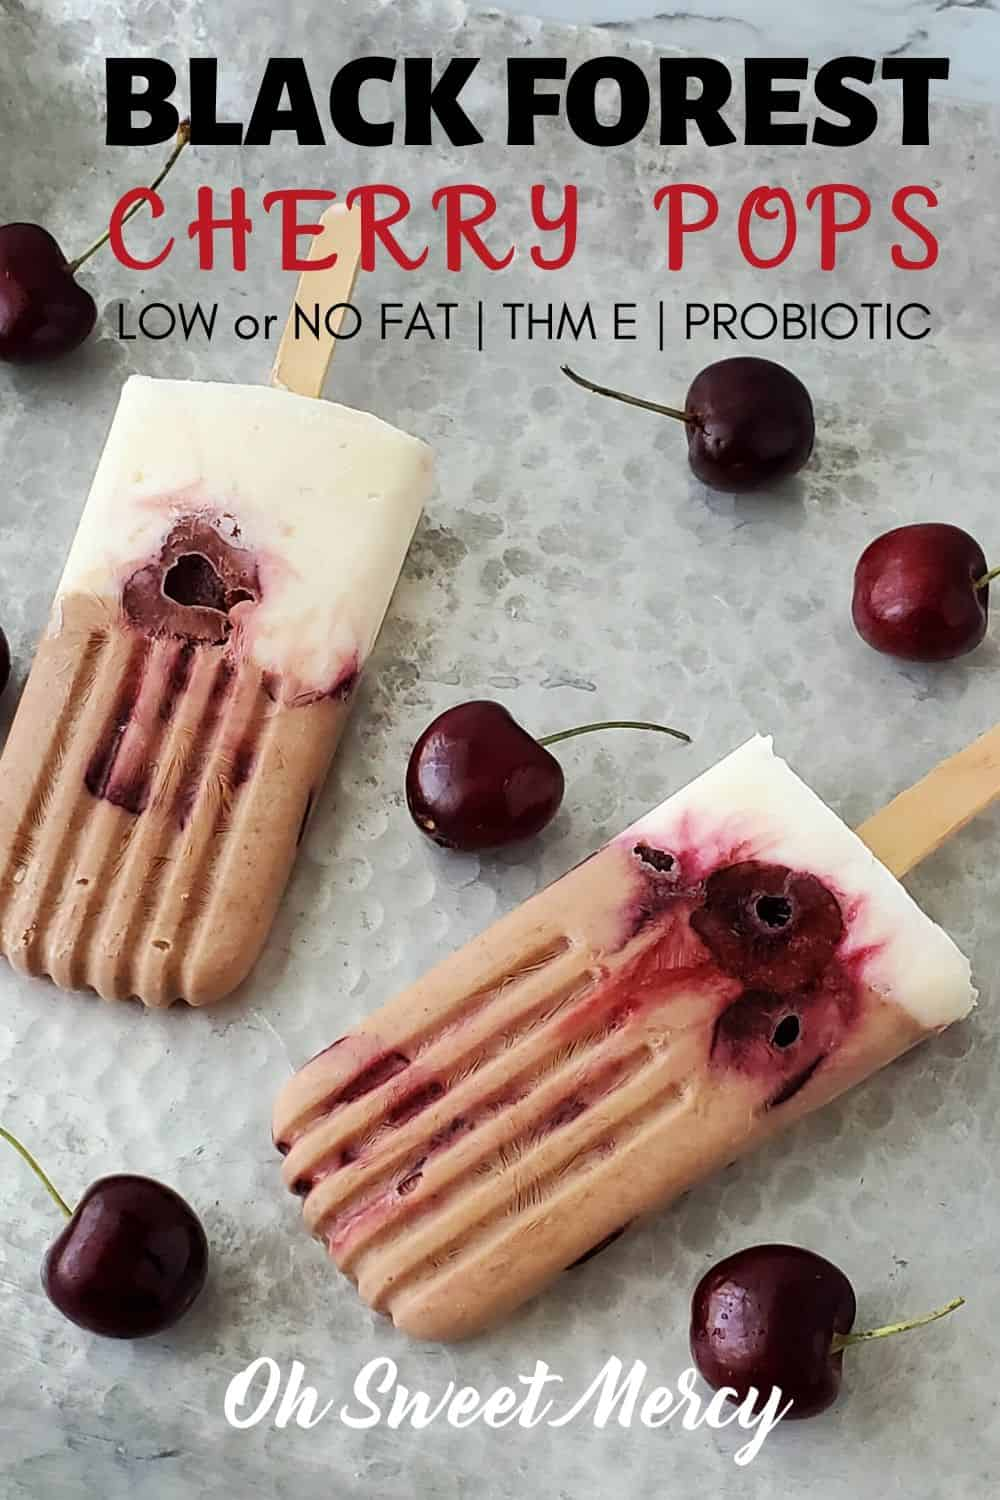 Love the flavors of Black Forest Cherry desserts but don't want all the fat and calories? My layered, low (or no) fat Black Forest Cherry pops layer creamy, chocolate Greek yogurt, dark sweet cherries, and vanilla yogurt for a healthy and delicious THM E dessert or snack. #lowfat #thm #healthycarbs #blackforestcherry #thmsnacks #thmdesserts #cacao #probiotic #yogurtpops @ohsweetmercy